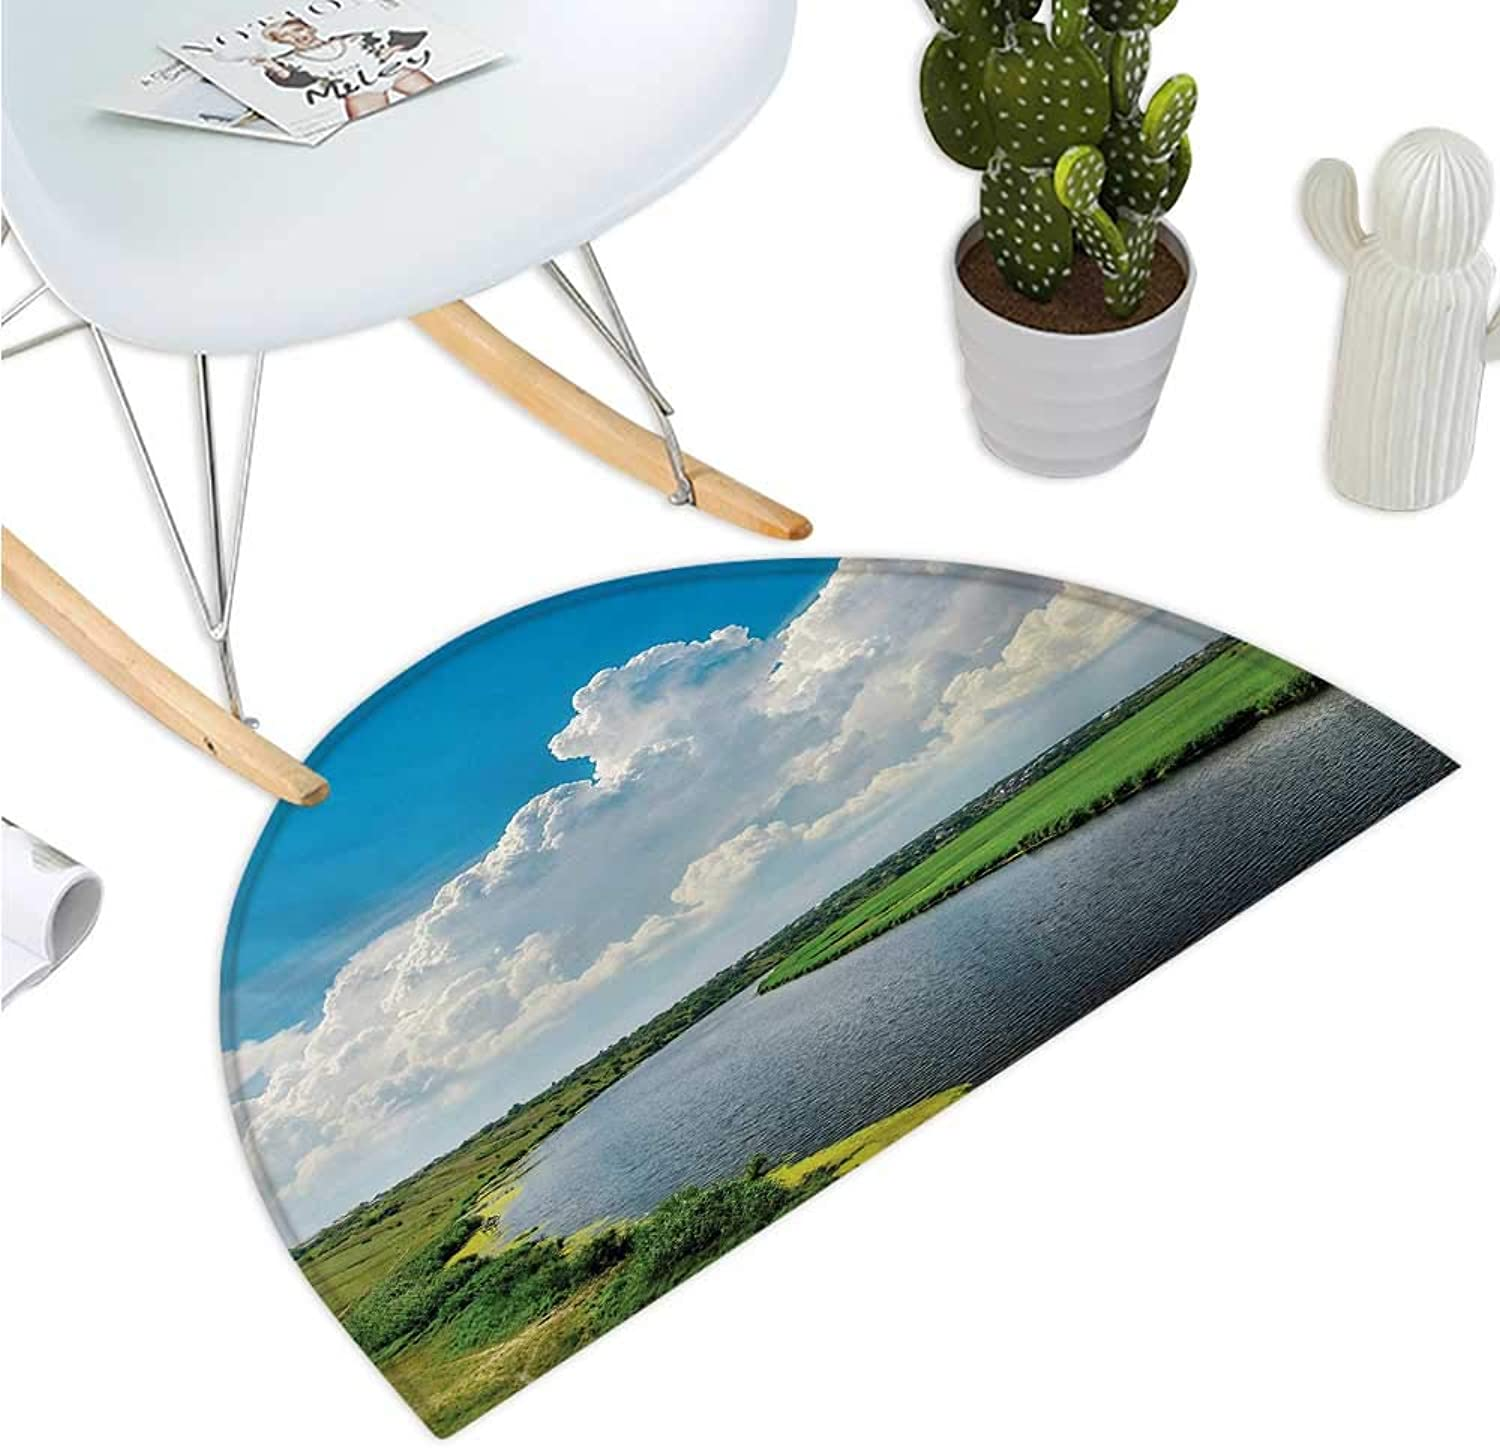 Nature Half Round Door mats Clouds Over Moving River Landscape with Lush Meadows Grass Clear Sky Daytime Bathroom Mat H 51.1  xD 76.7  Green bluee White